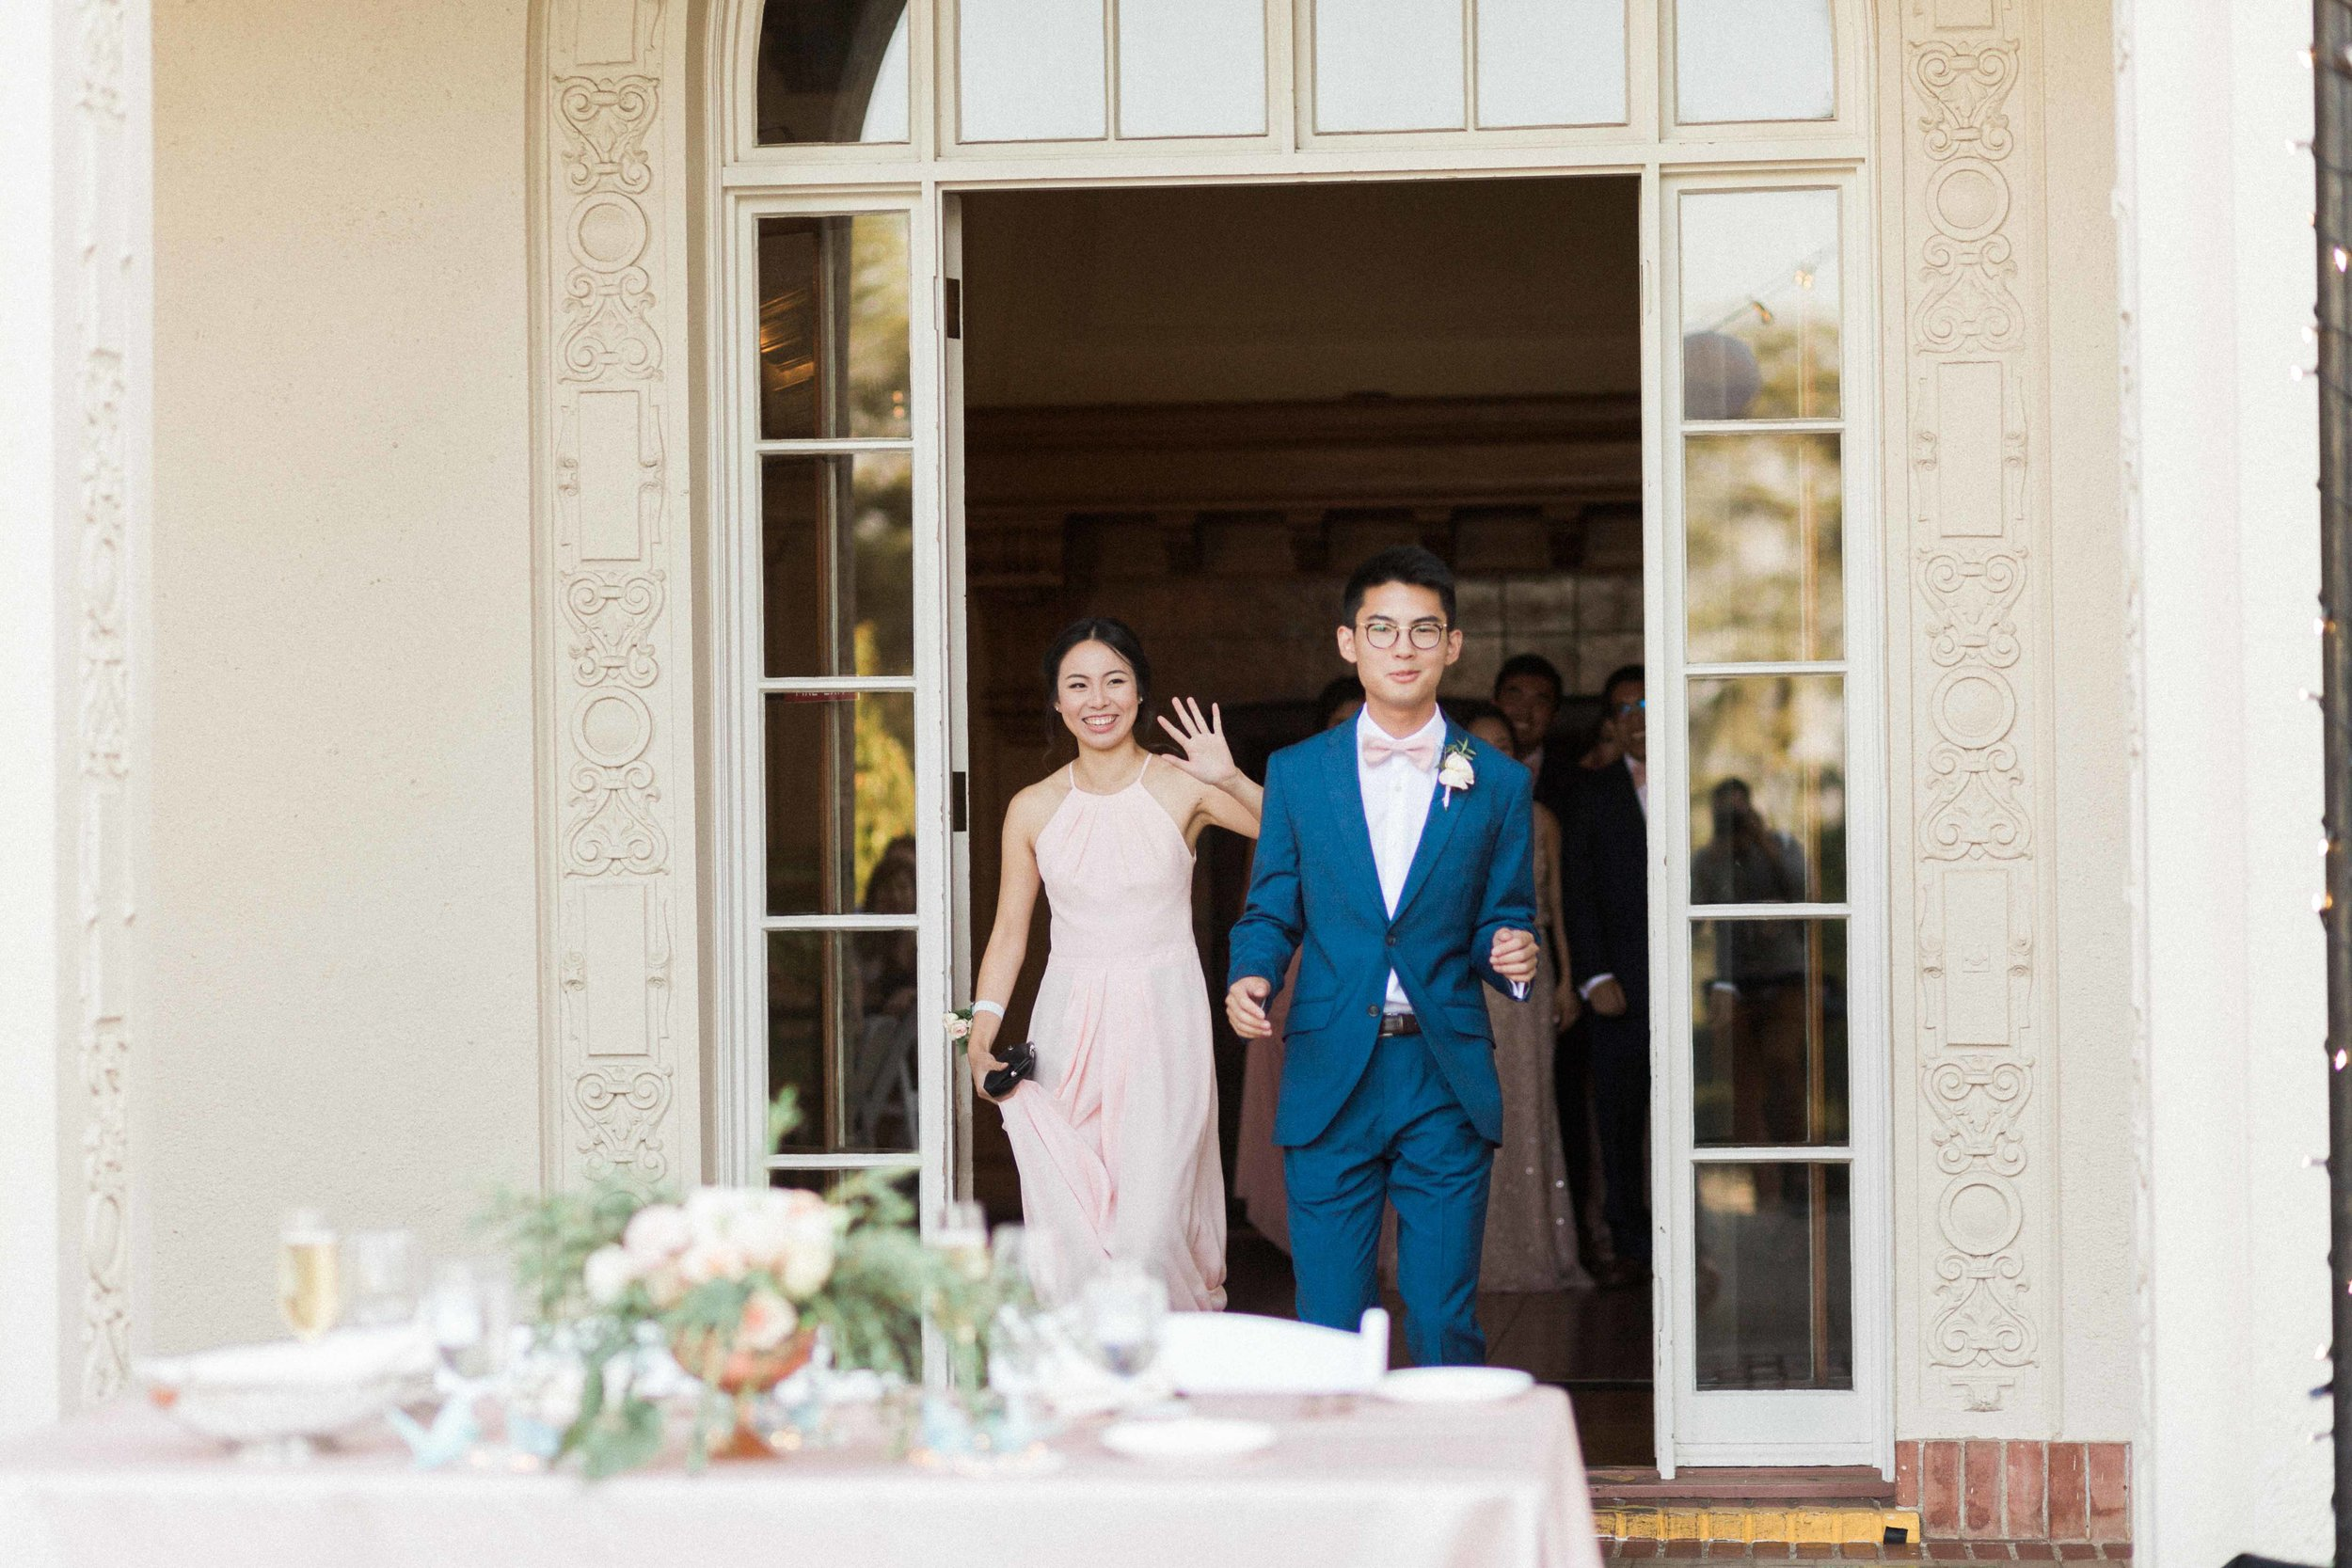 Villa_Montalvo_Wedding_Photographer_Videographer_San_Francisco153.jpg